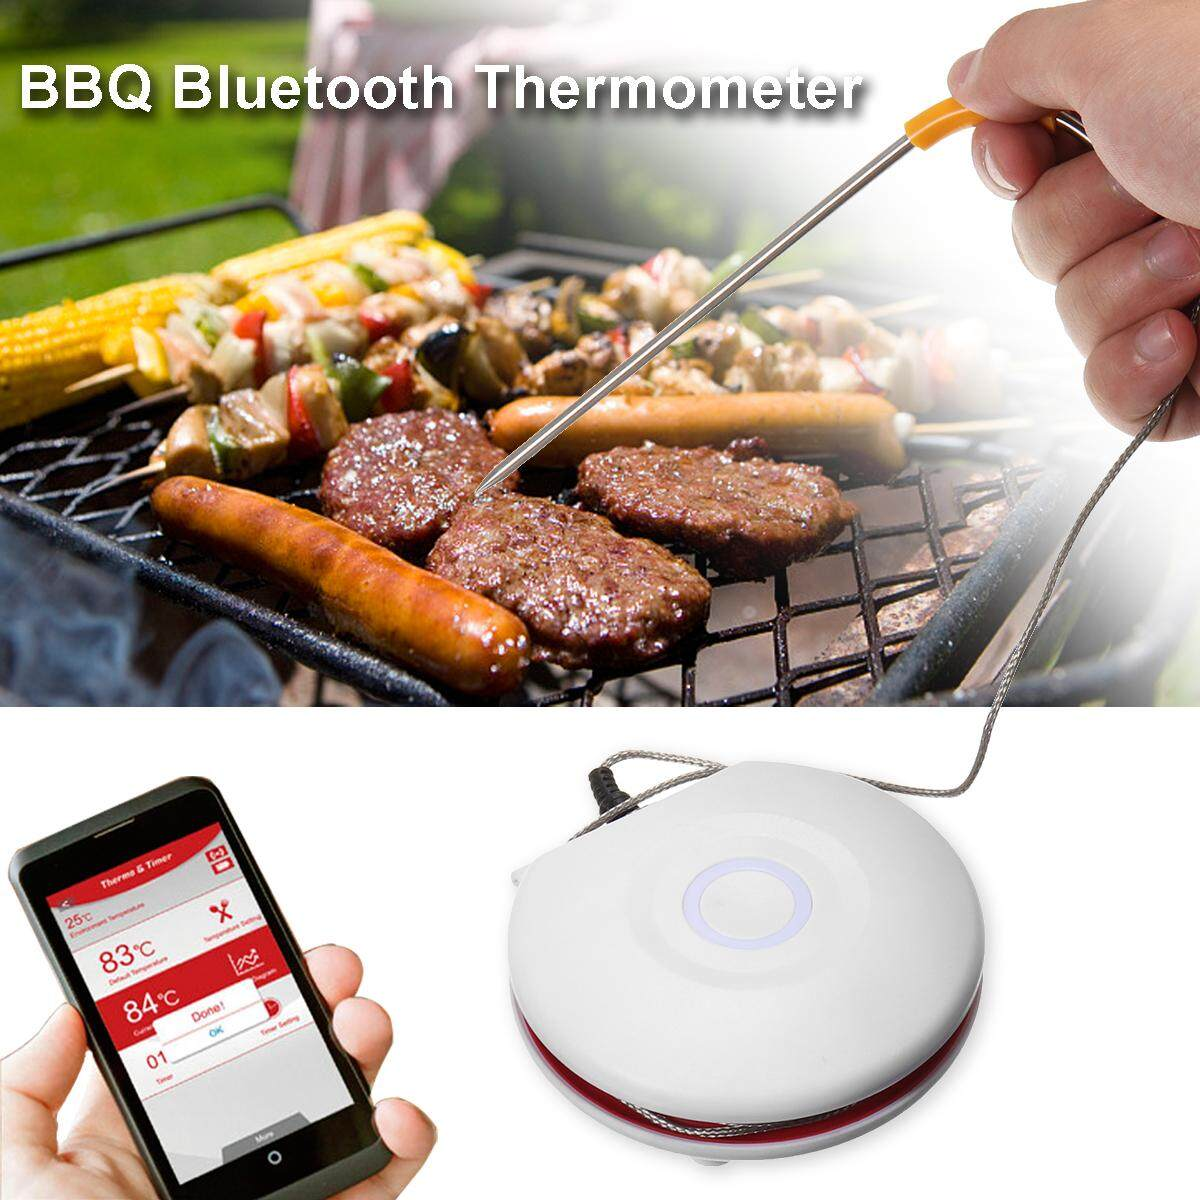 Digital Meat Thermometer Cooking Thermometer Supports bluetooth Wireless for BBQ